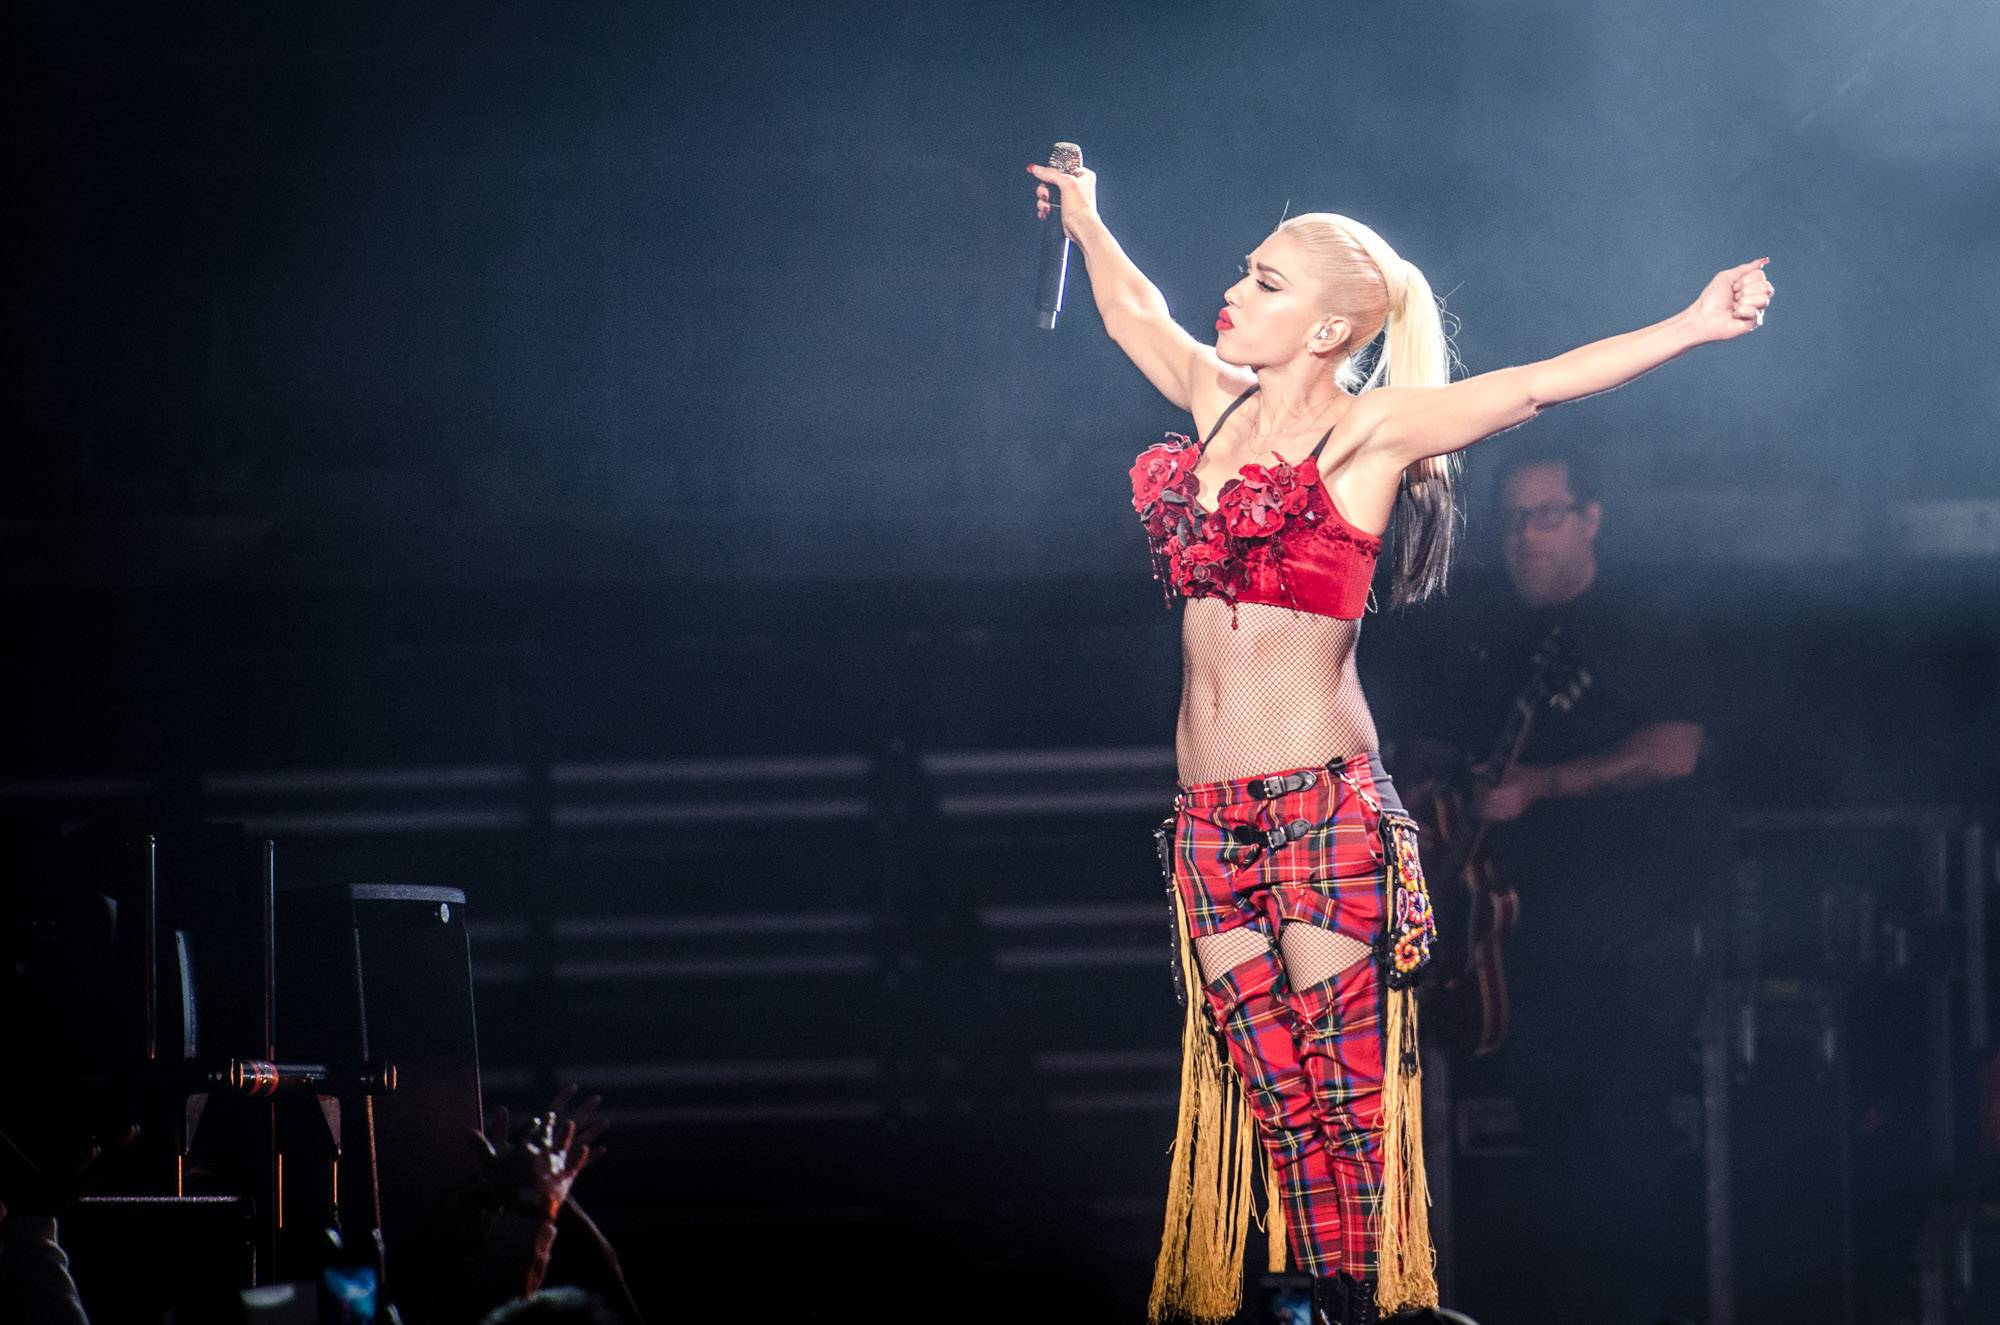 Gwen Stefani at Rogers Arena, Vancouver, Aug. 25 2016. Jason Martin photo.